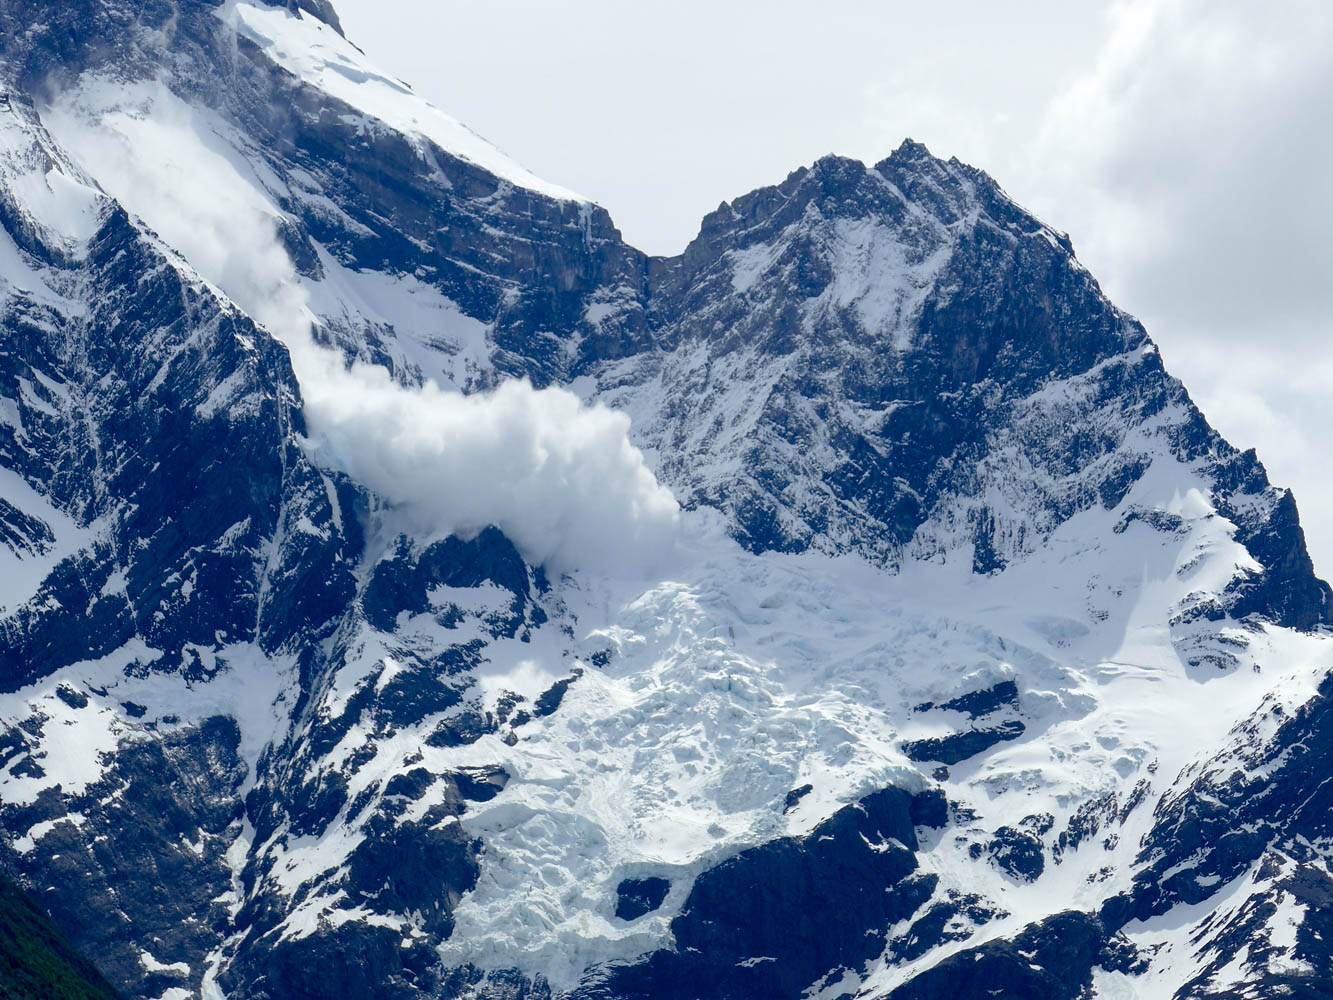 Avalanche on Paine Grande